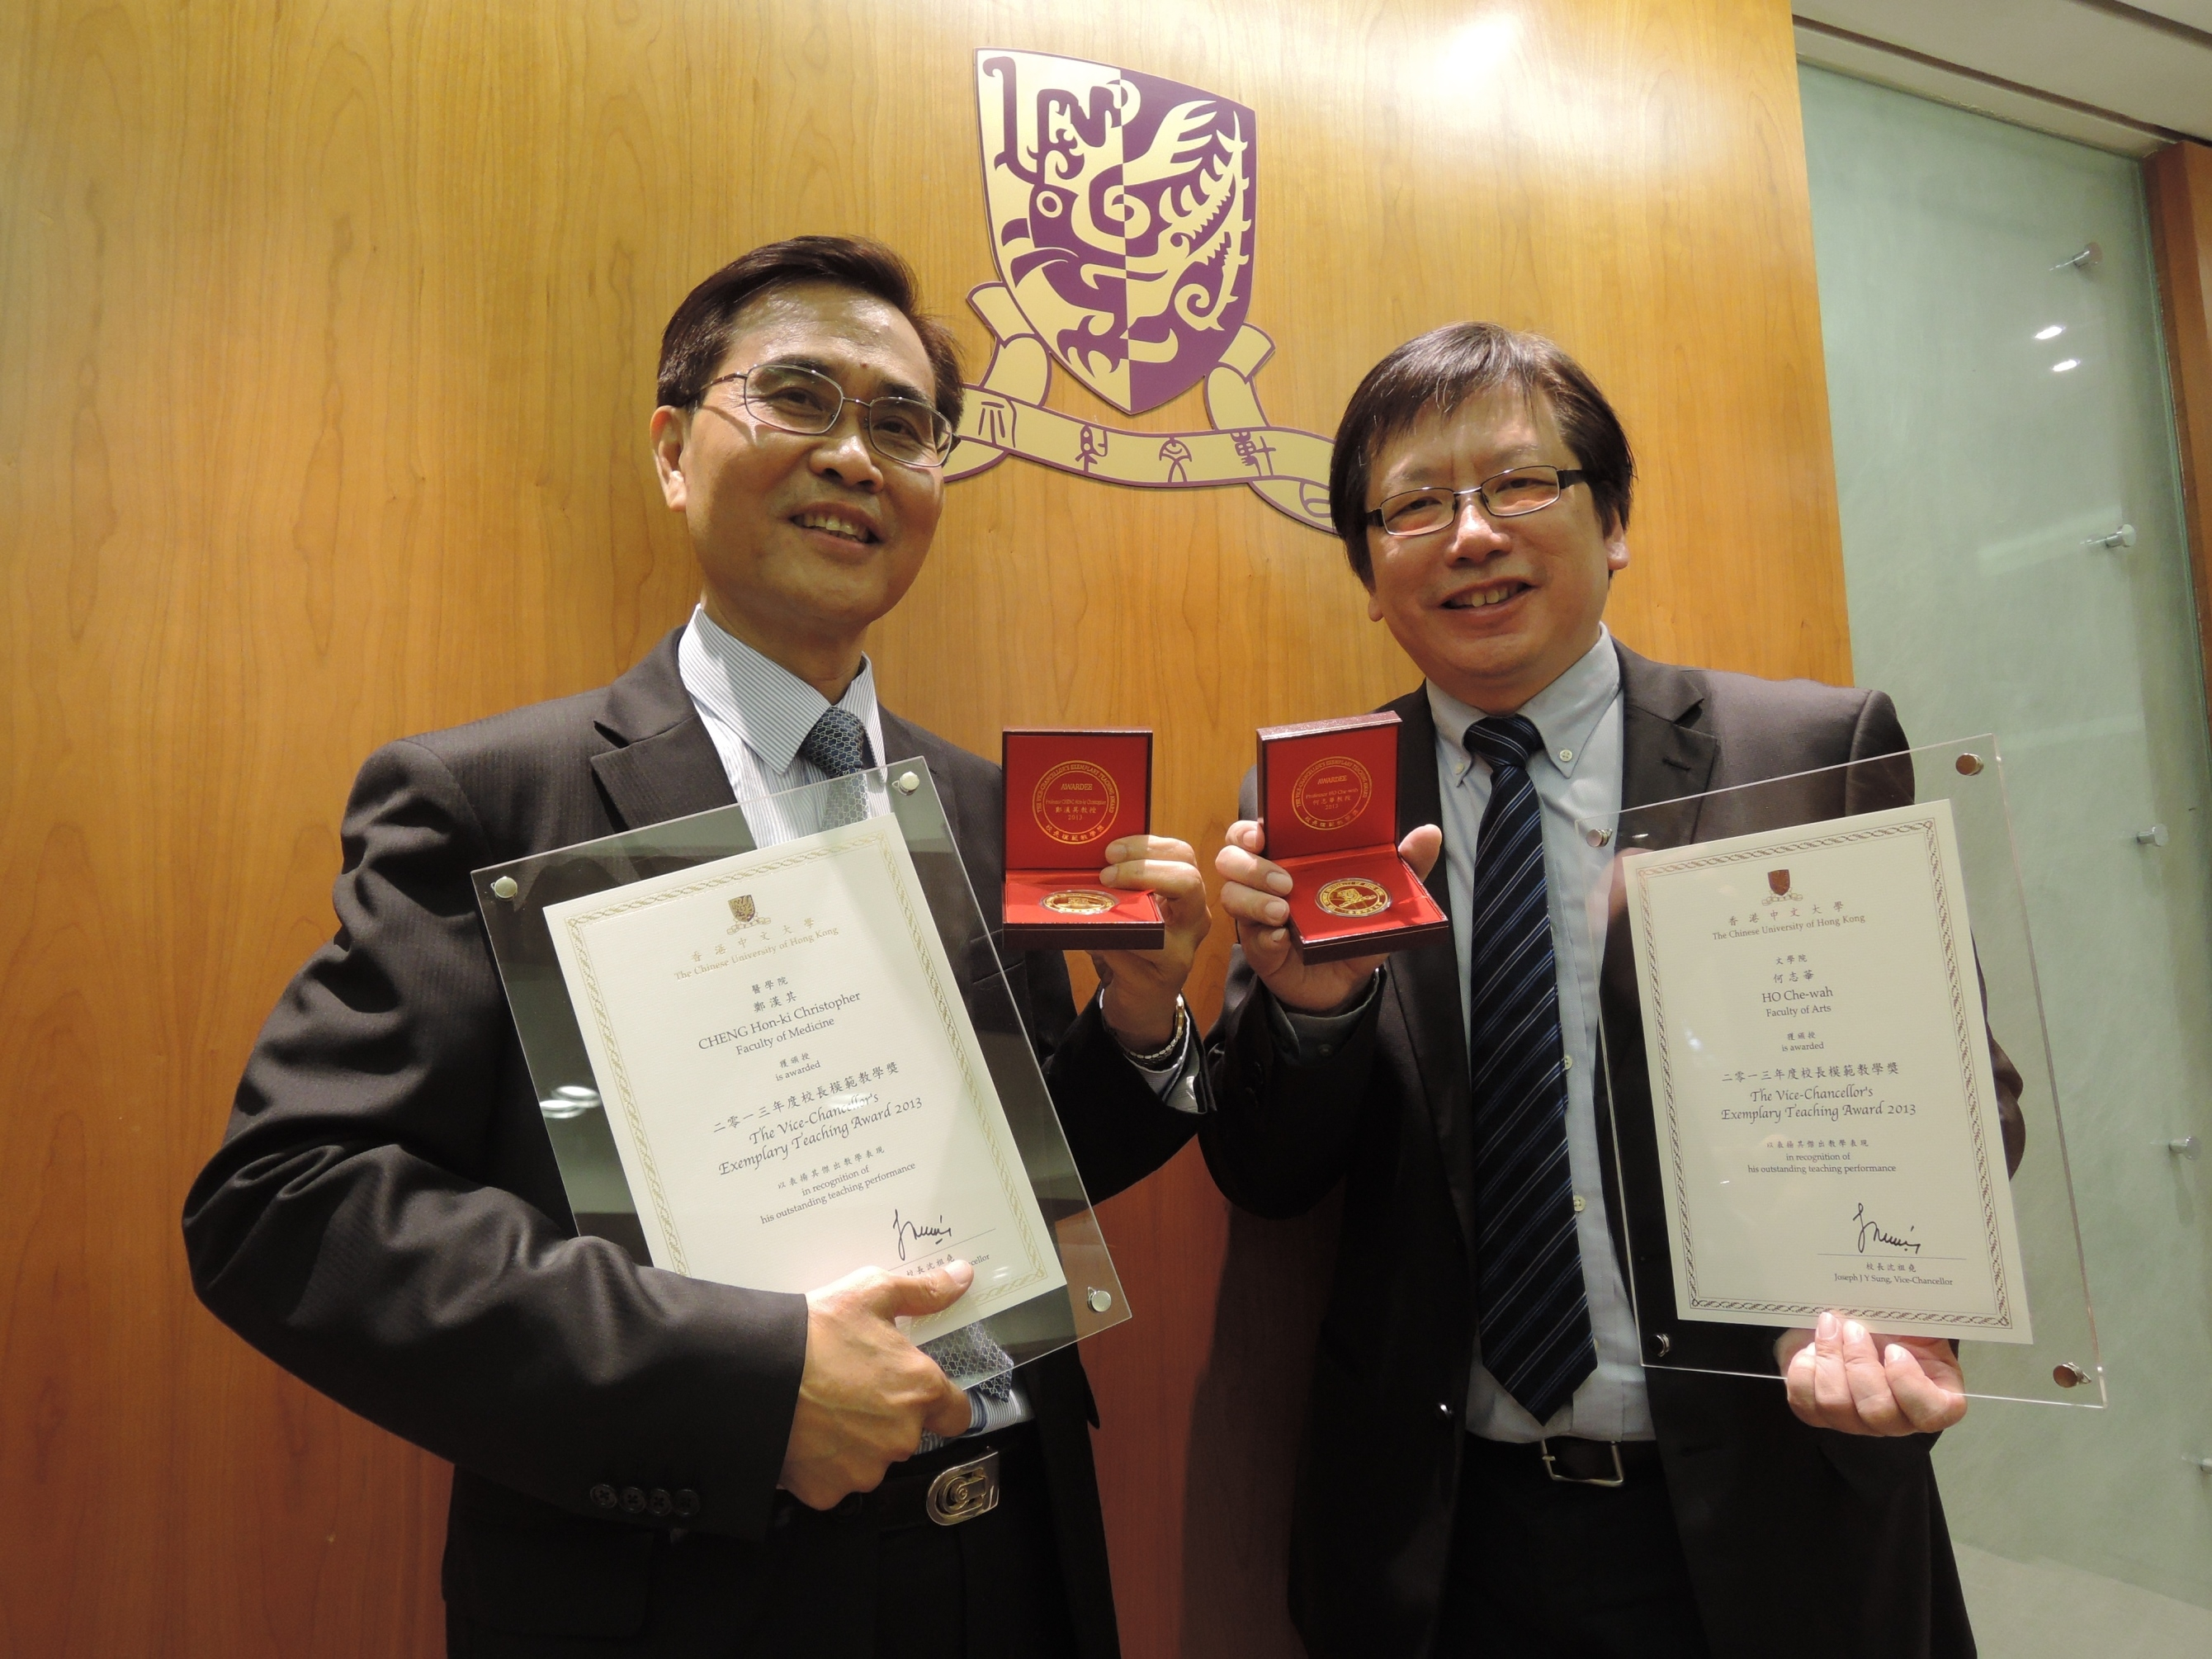 Prof. Ho Che-wah (right) and Prof. Cheng Hon-ki Christopher, awardees of Vice-Chancellor's Exemplary Teaching Award 2013, share their teaching experience.